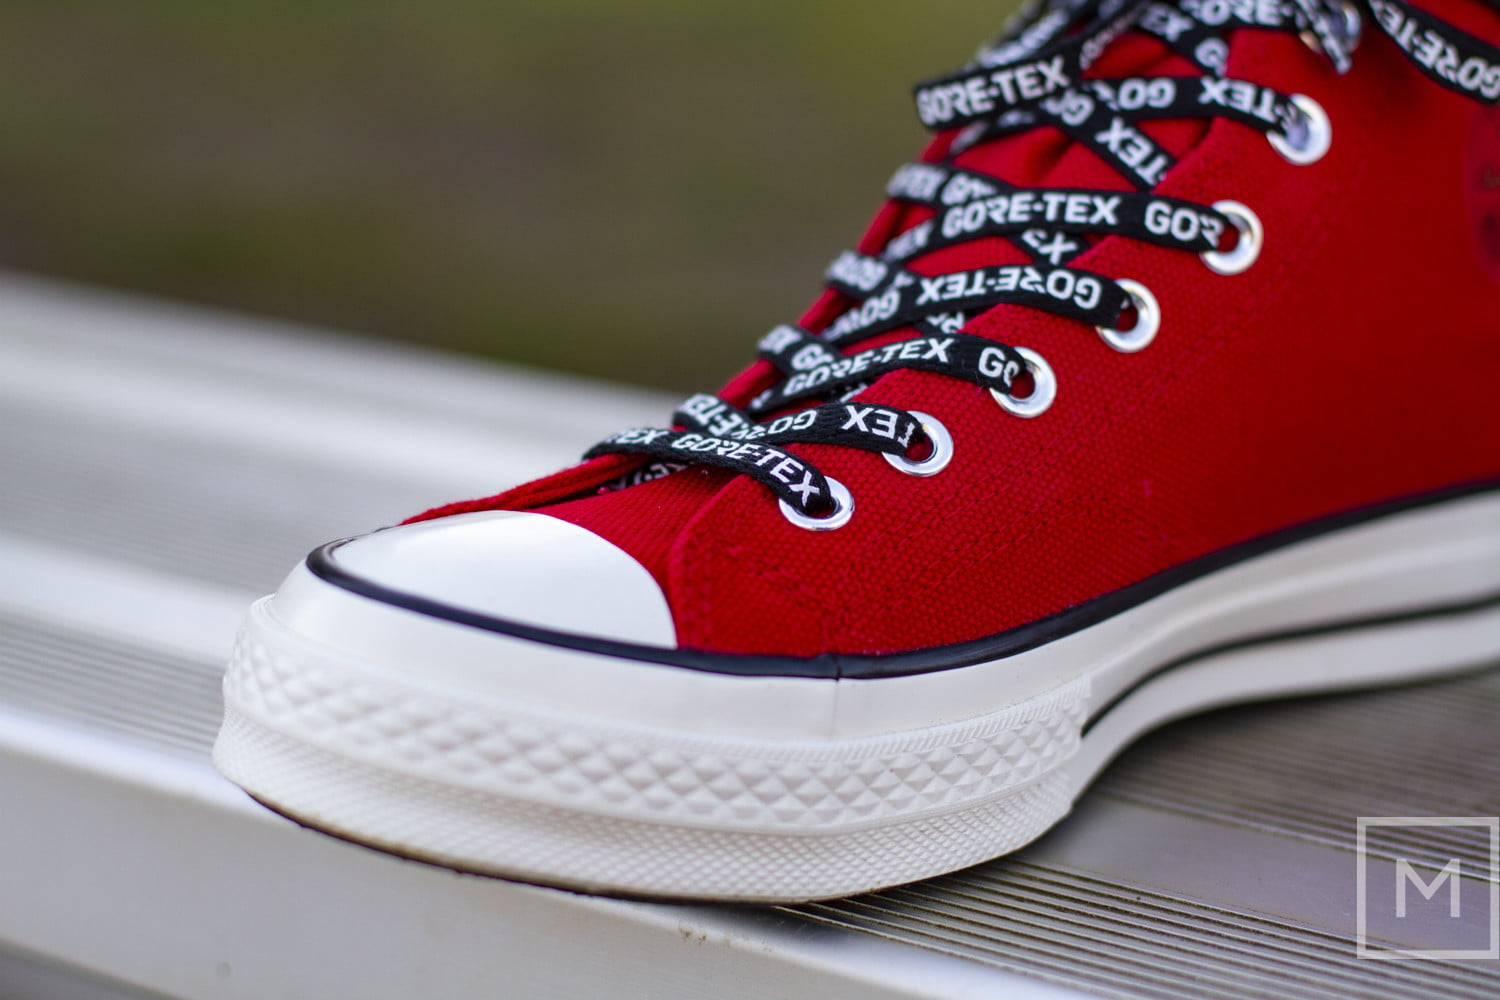 the converse chuck 70 gore tex collection keeps style in and water out gortex taylor shoes 3